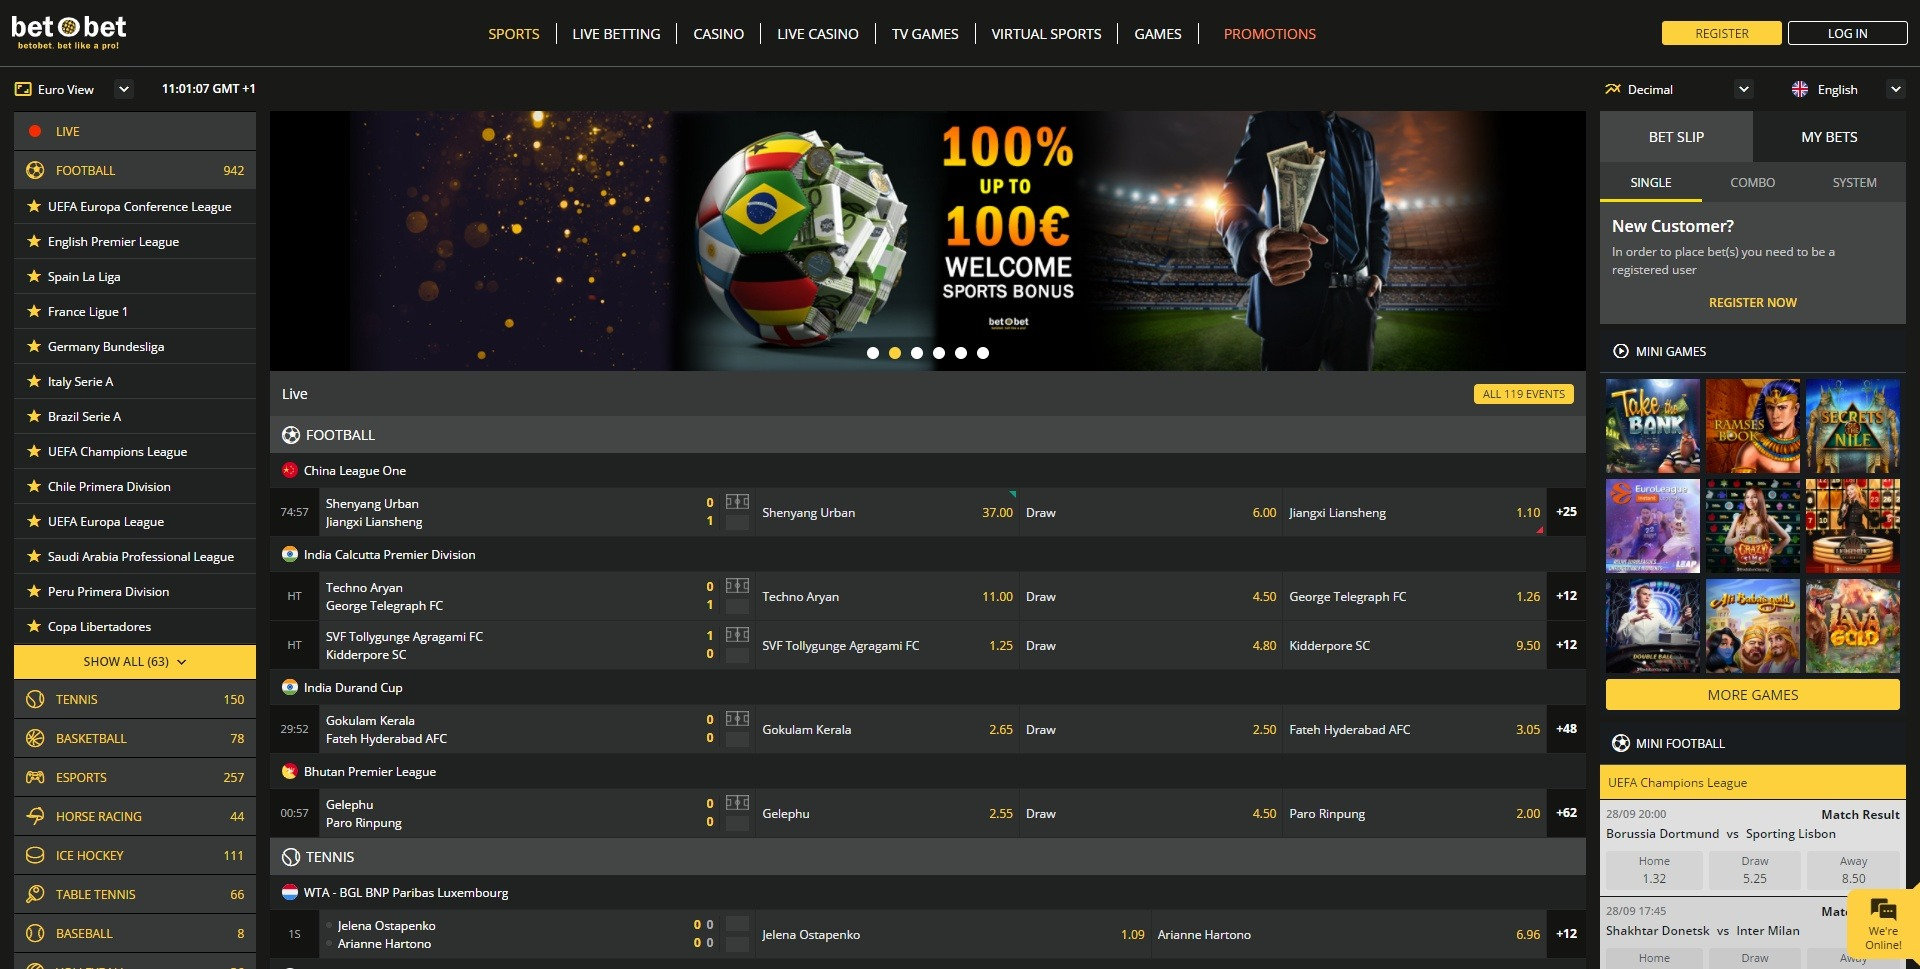 Betobet Sports and Markets